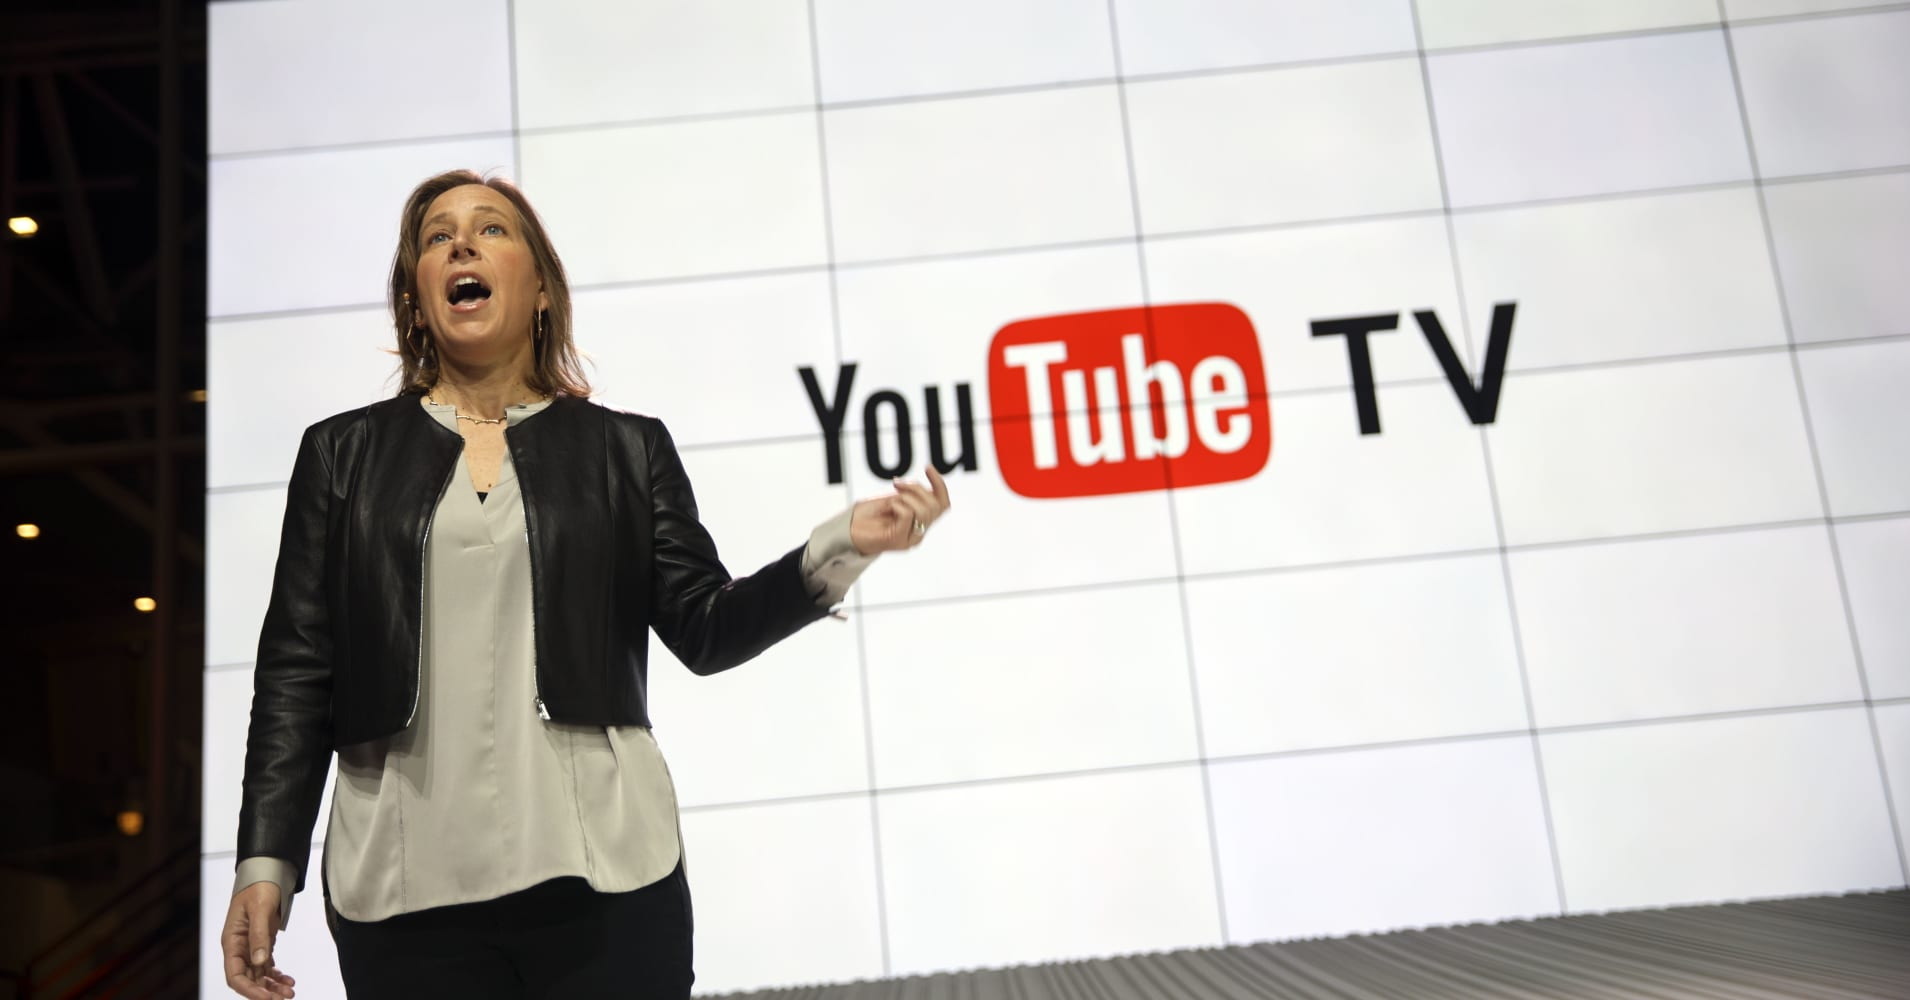 YouTube CEO Does Damage Control After Advertisers Flee Over Pedophilia Scandal